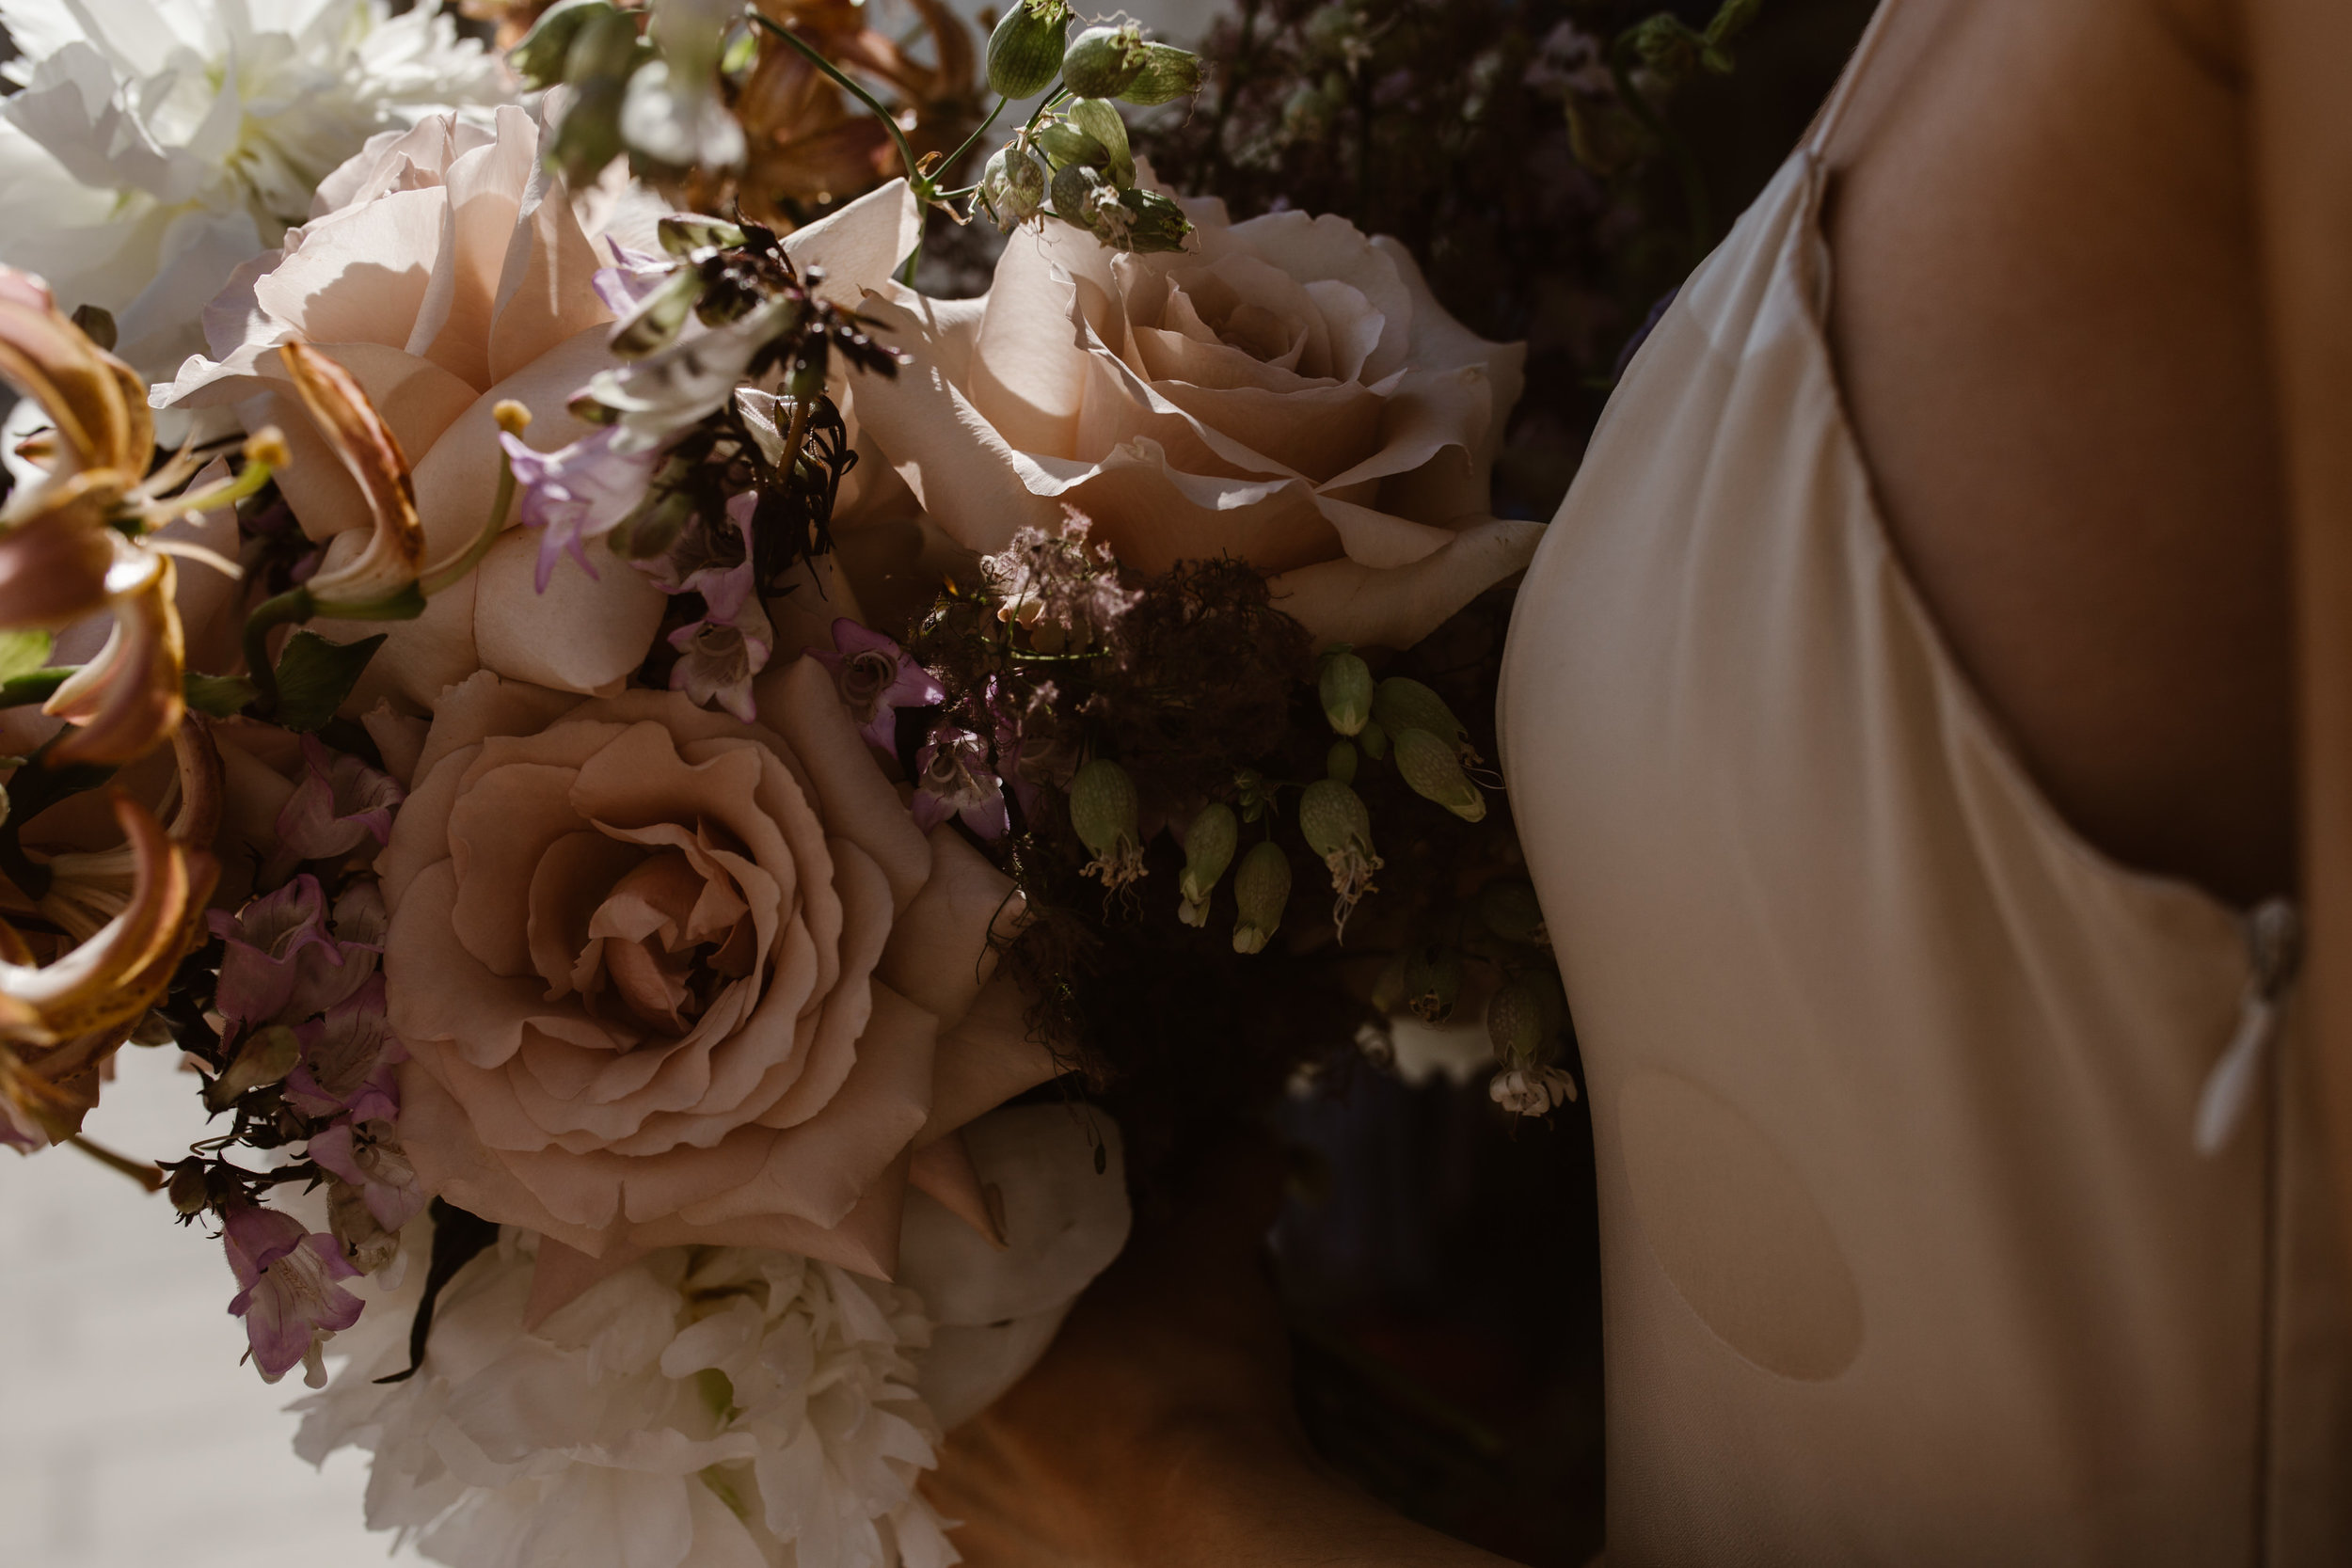 A Stylish And Intimate London Elopement Shoot With Pretty Florals